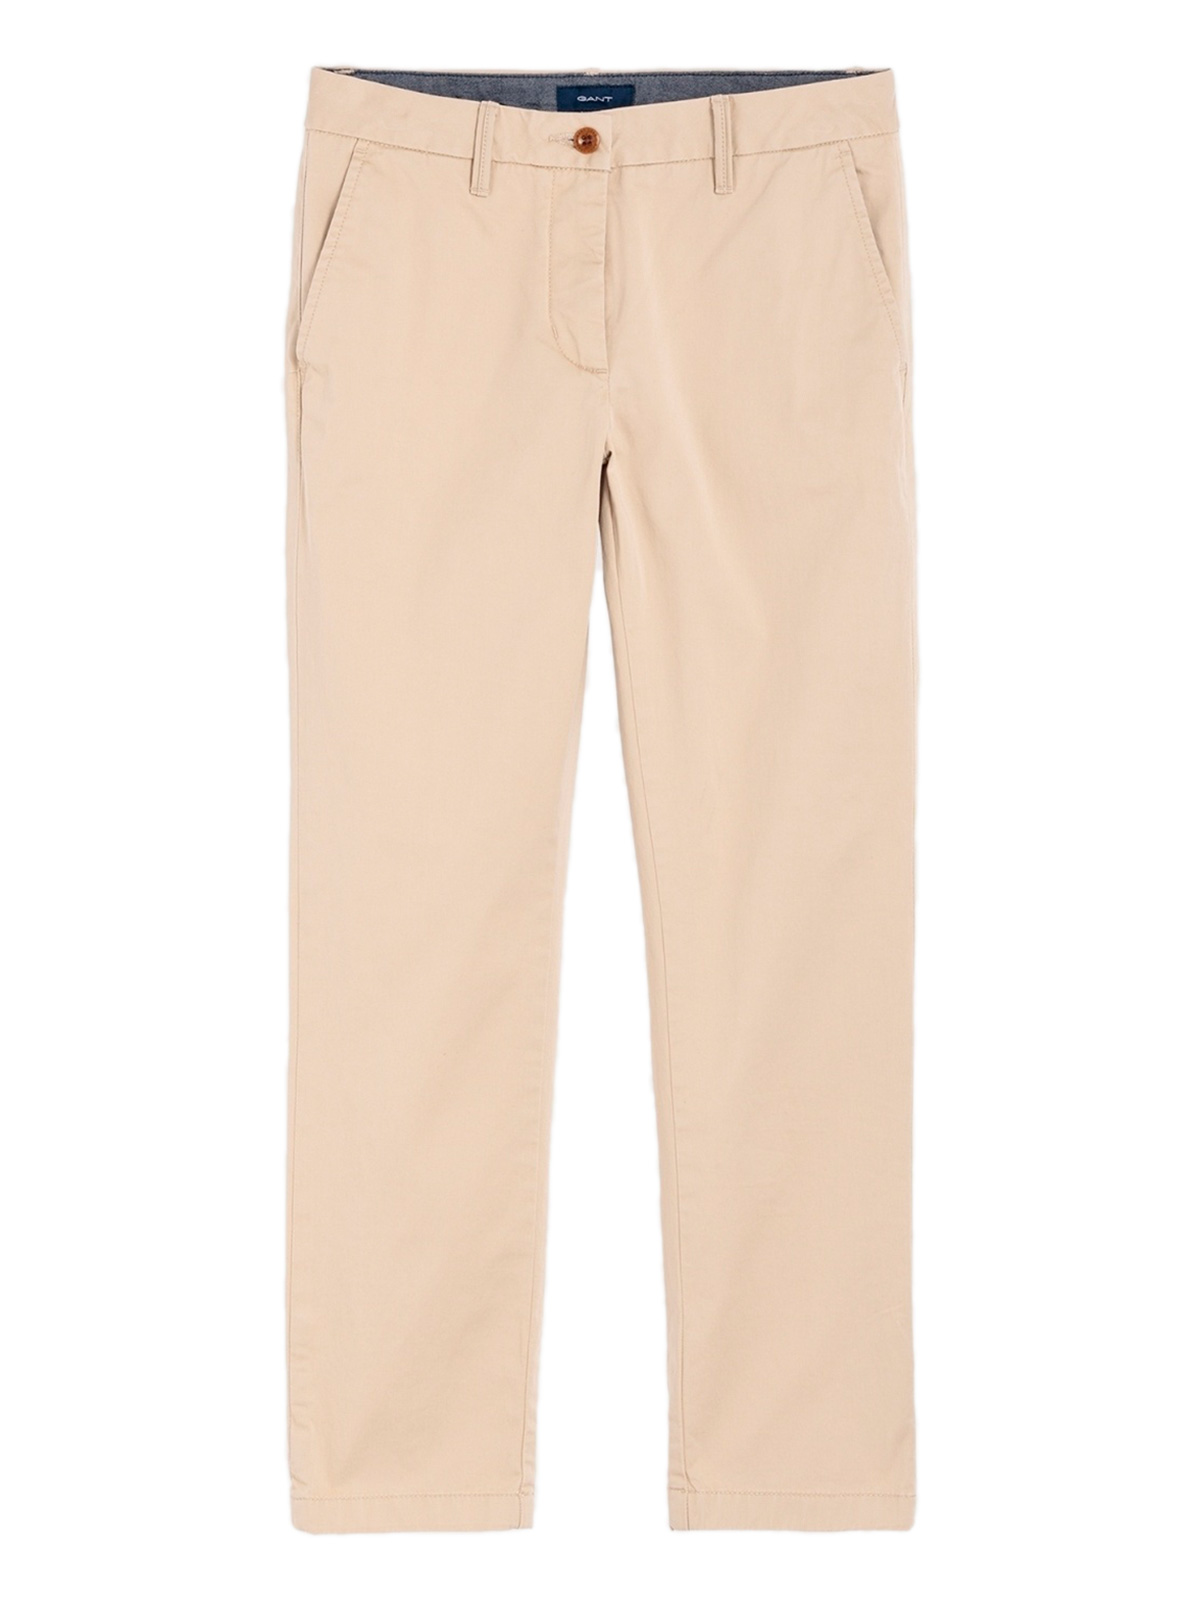 Picture of GANT | TROUSERS O1. CLASSIC CROPPED CHINO